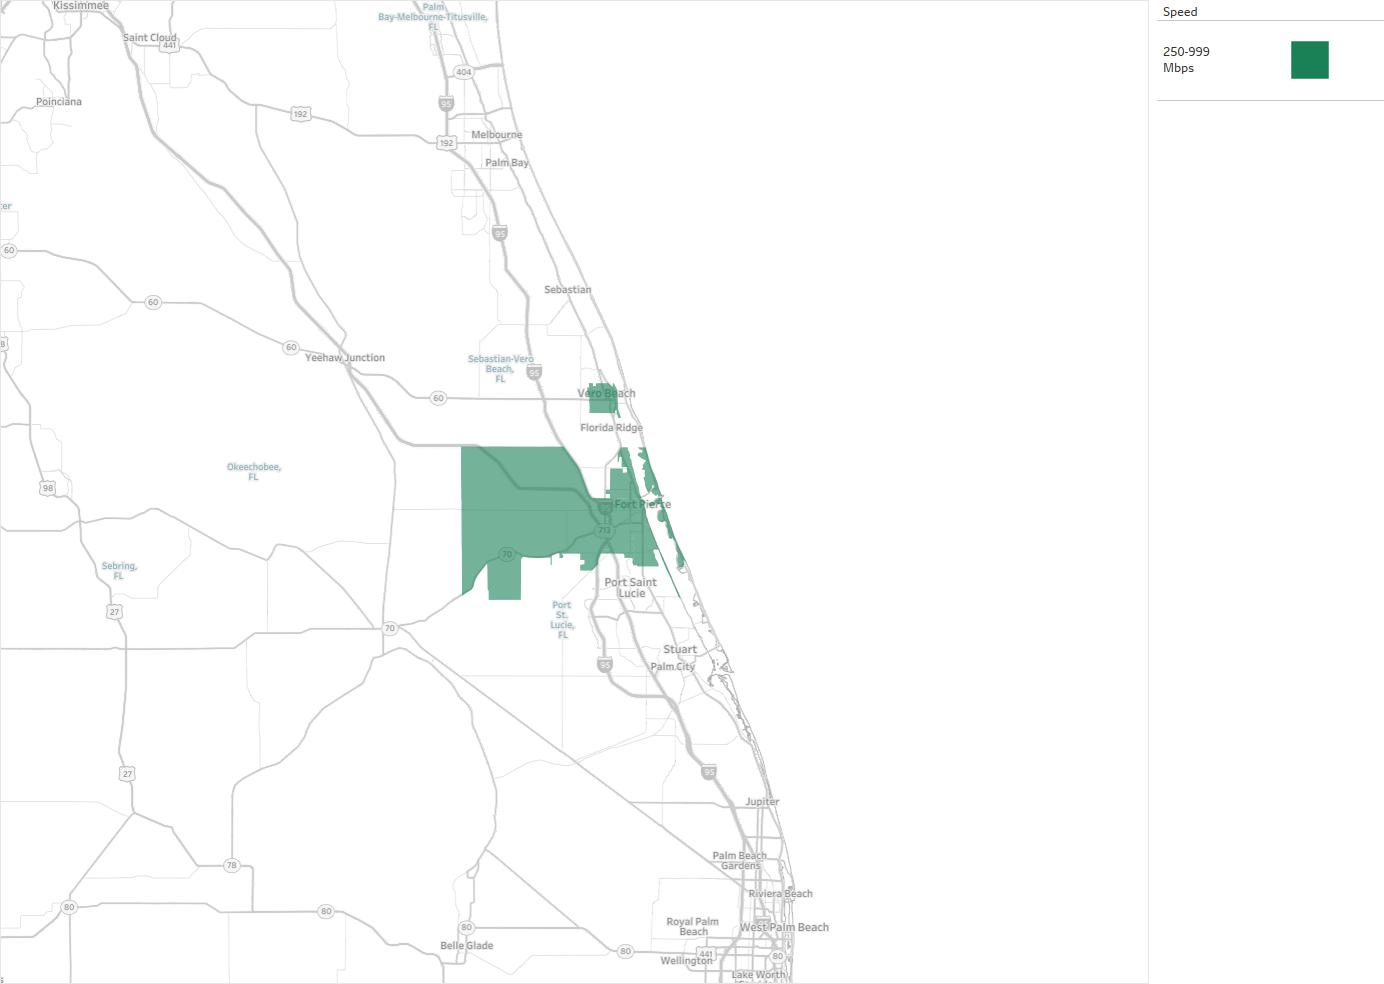 Ft Pierce Utilities Authority Availability Areas Coverage Map - Fort Pierce To Jupiter Map Us 1